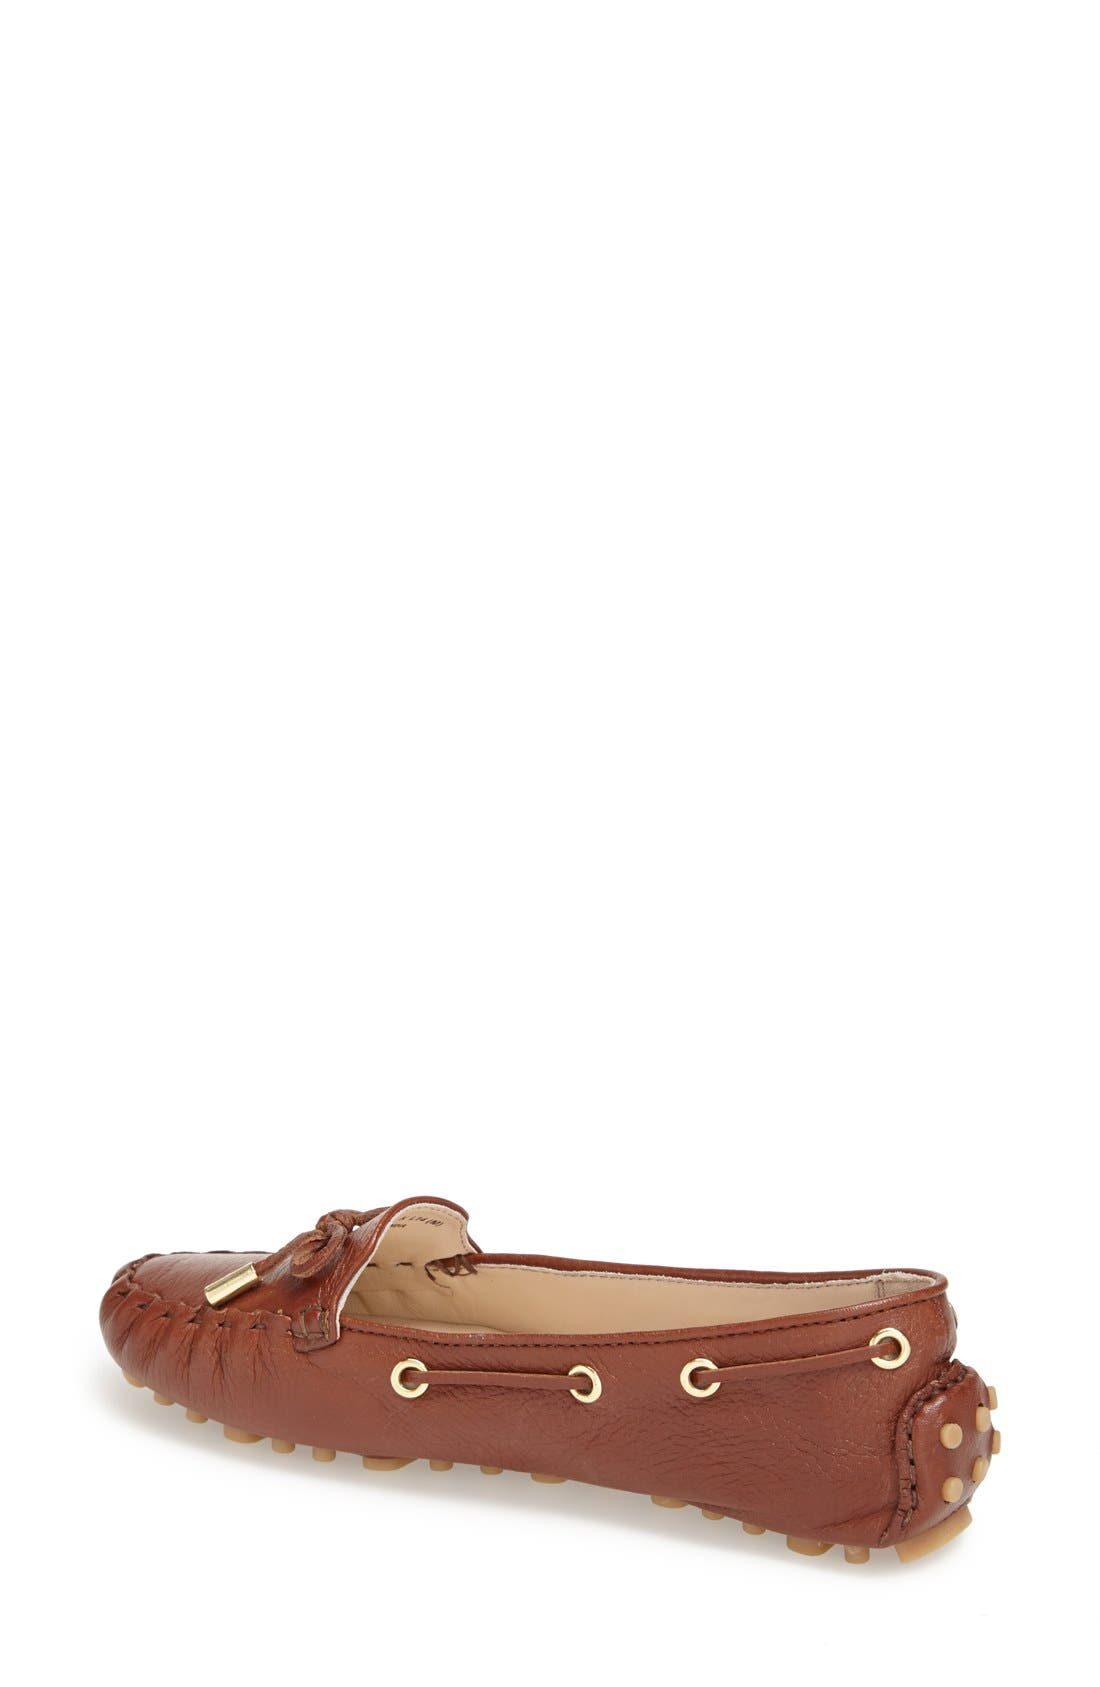 Alternate Image 2  - Cole Haan 'Cary' Leather Driving Flat (Women)